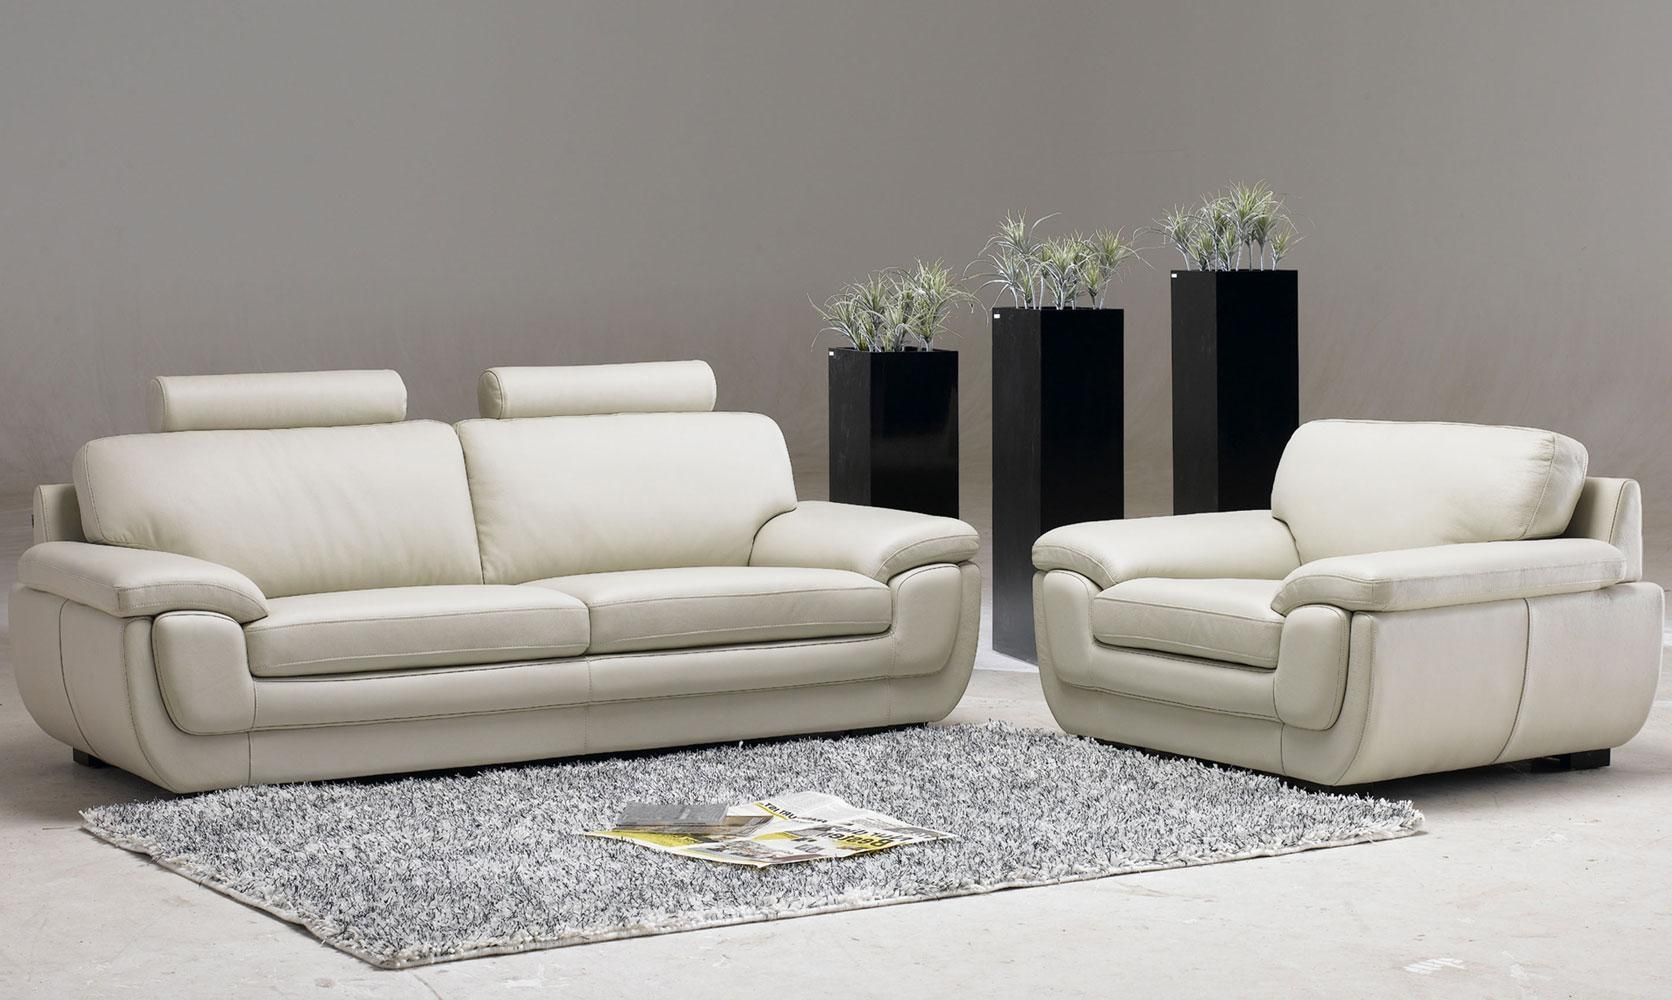 Living Room Sofa Living Room Design And Living Room Ideas With Sofa Chairs For Living Room (View 2 of 20)